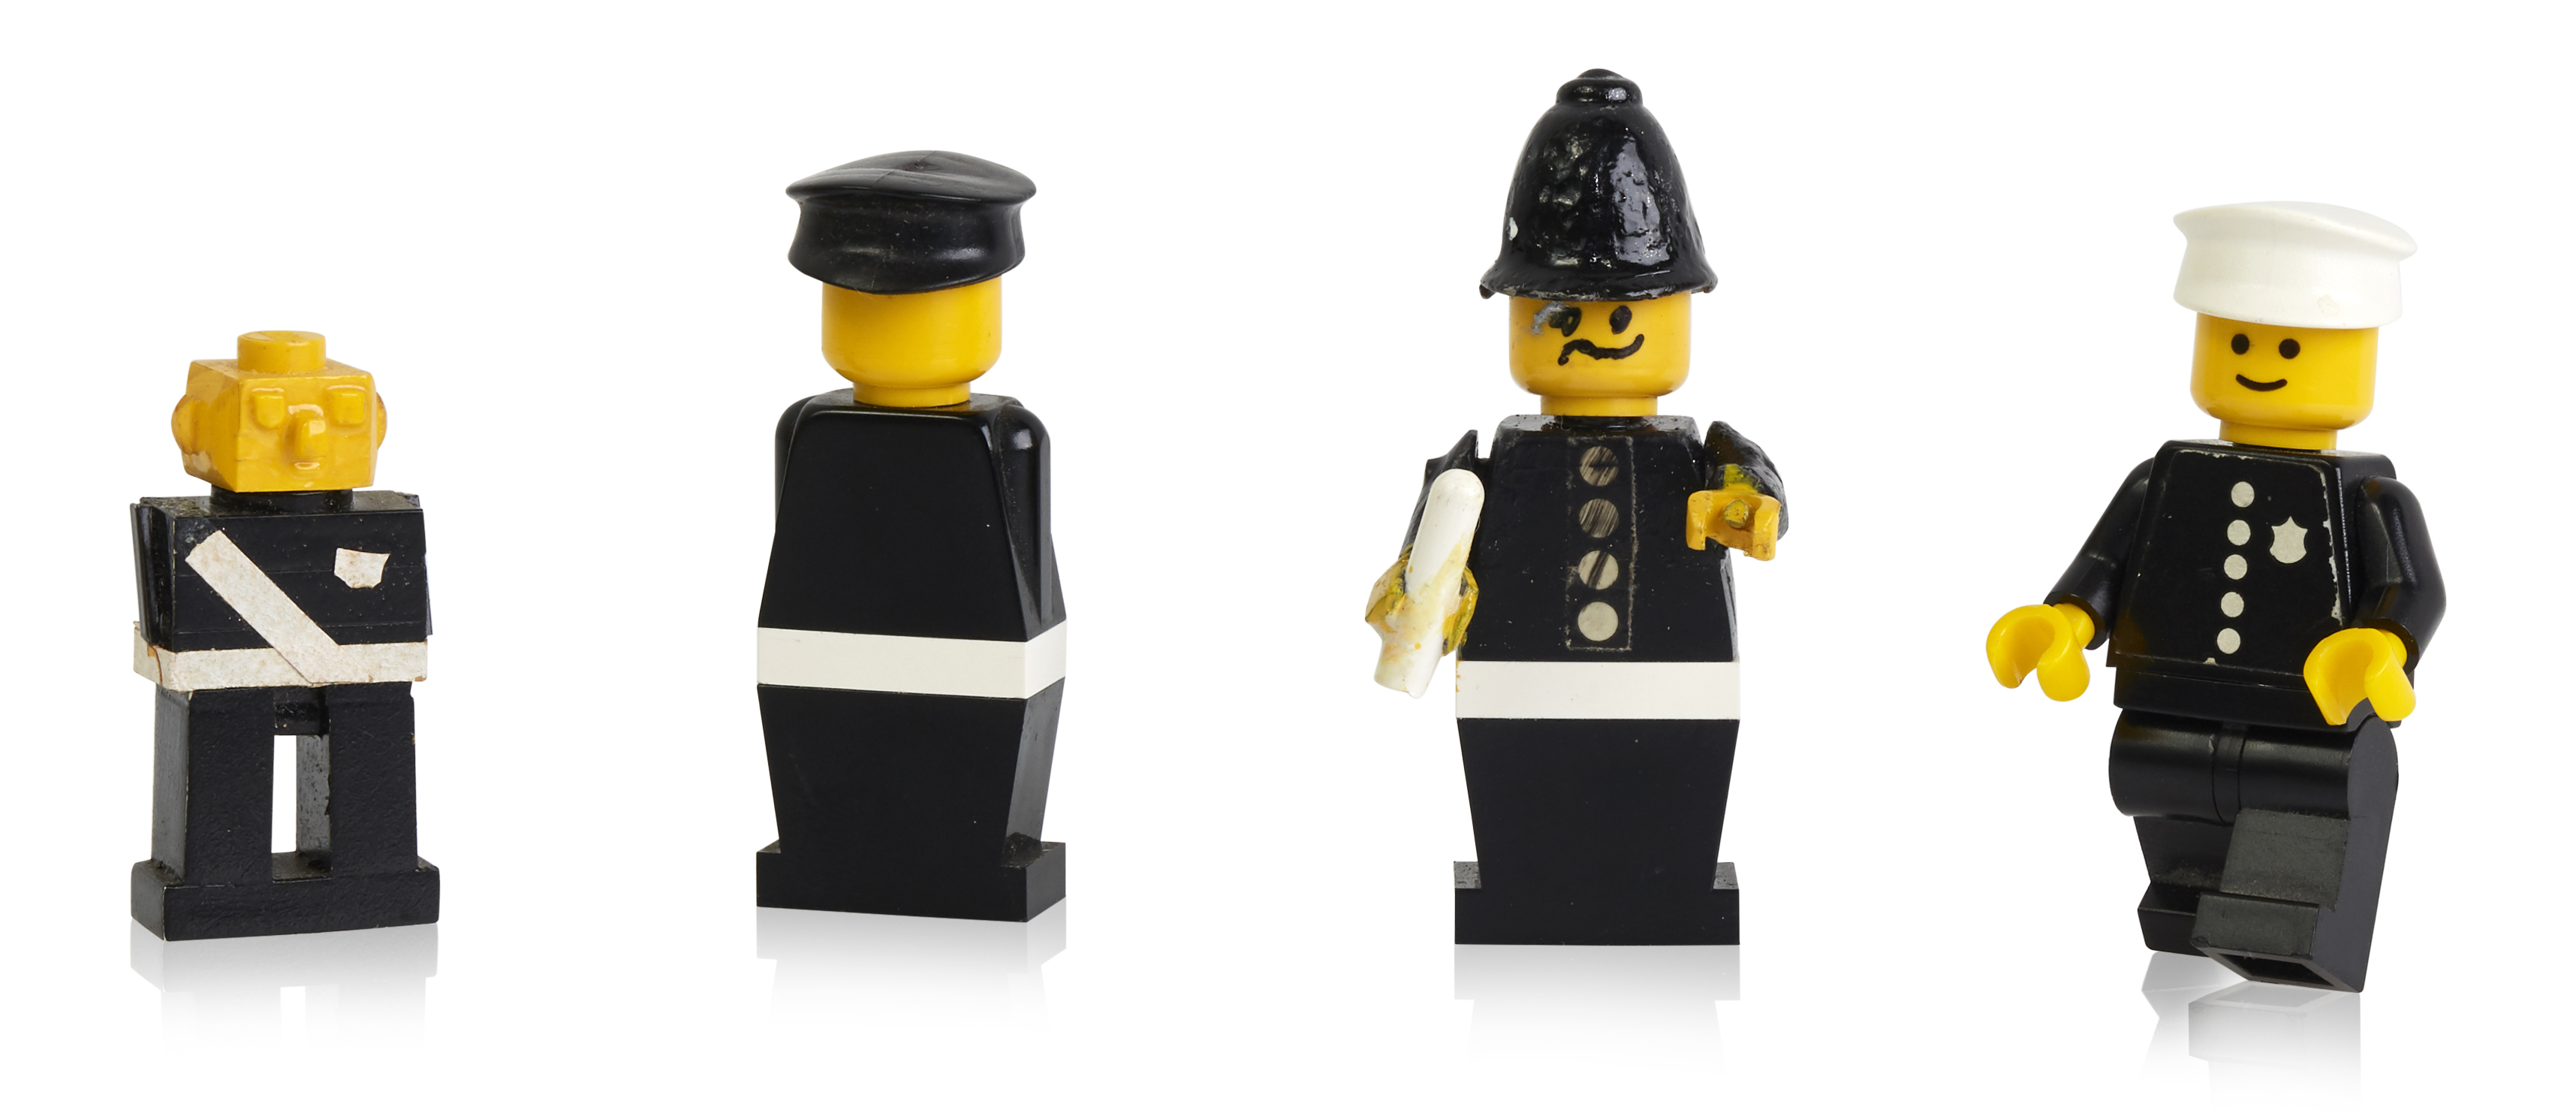 early-prototypes-and-first-police-minifigure.jpg